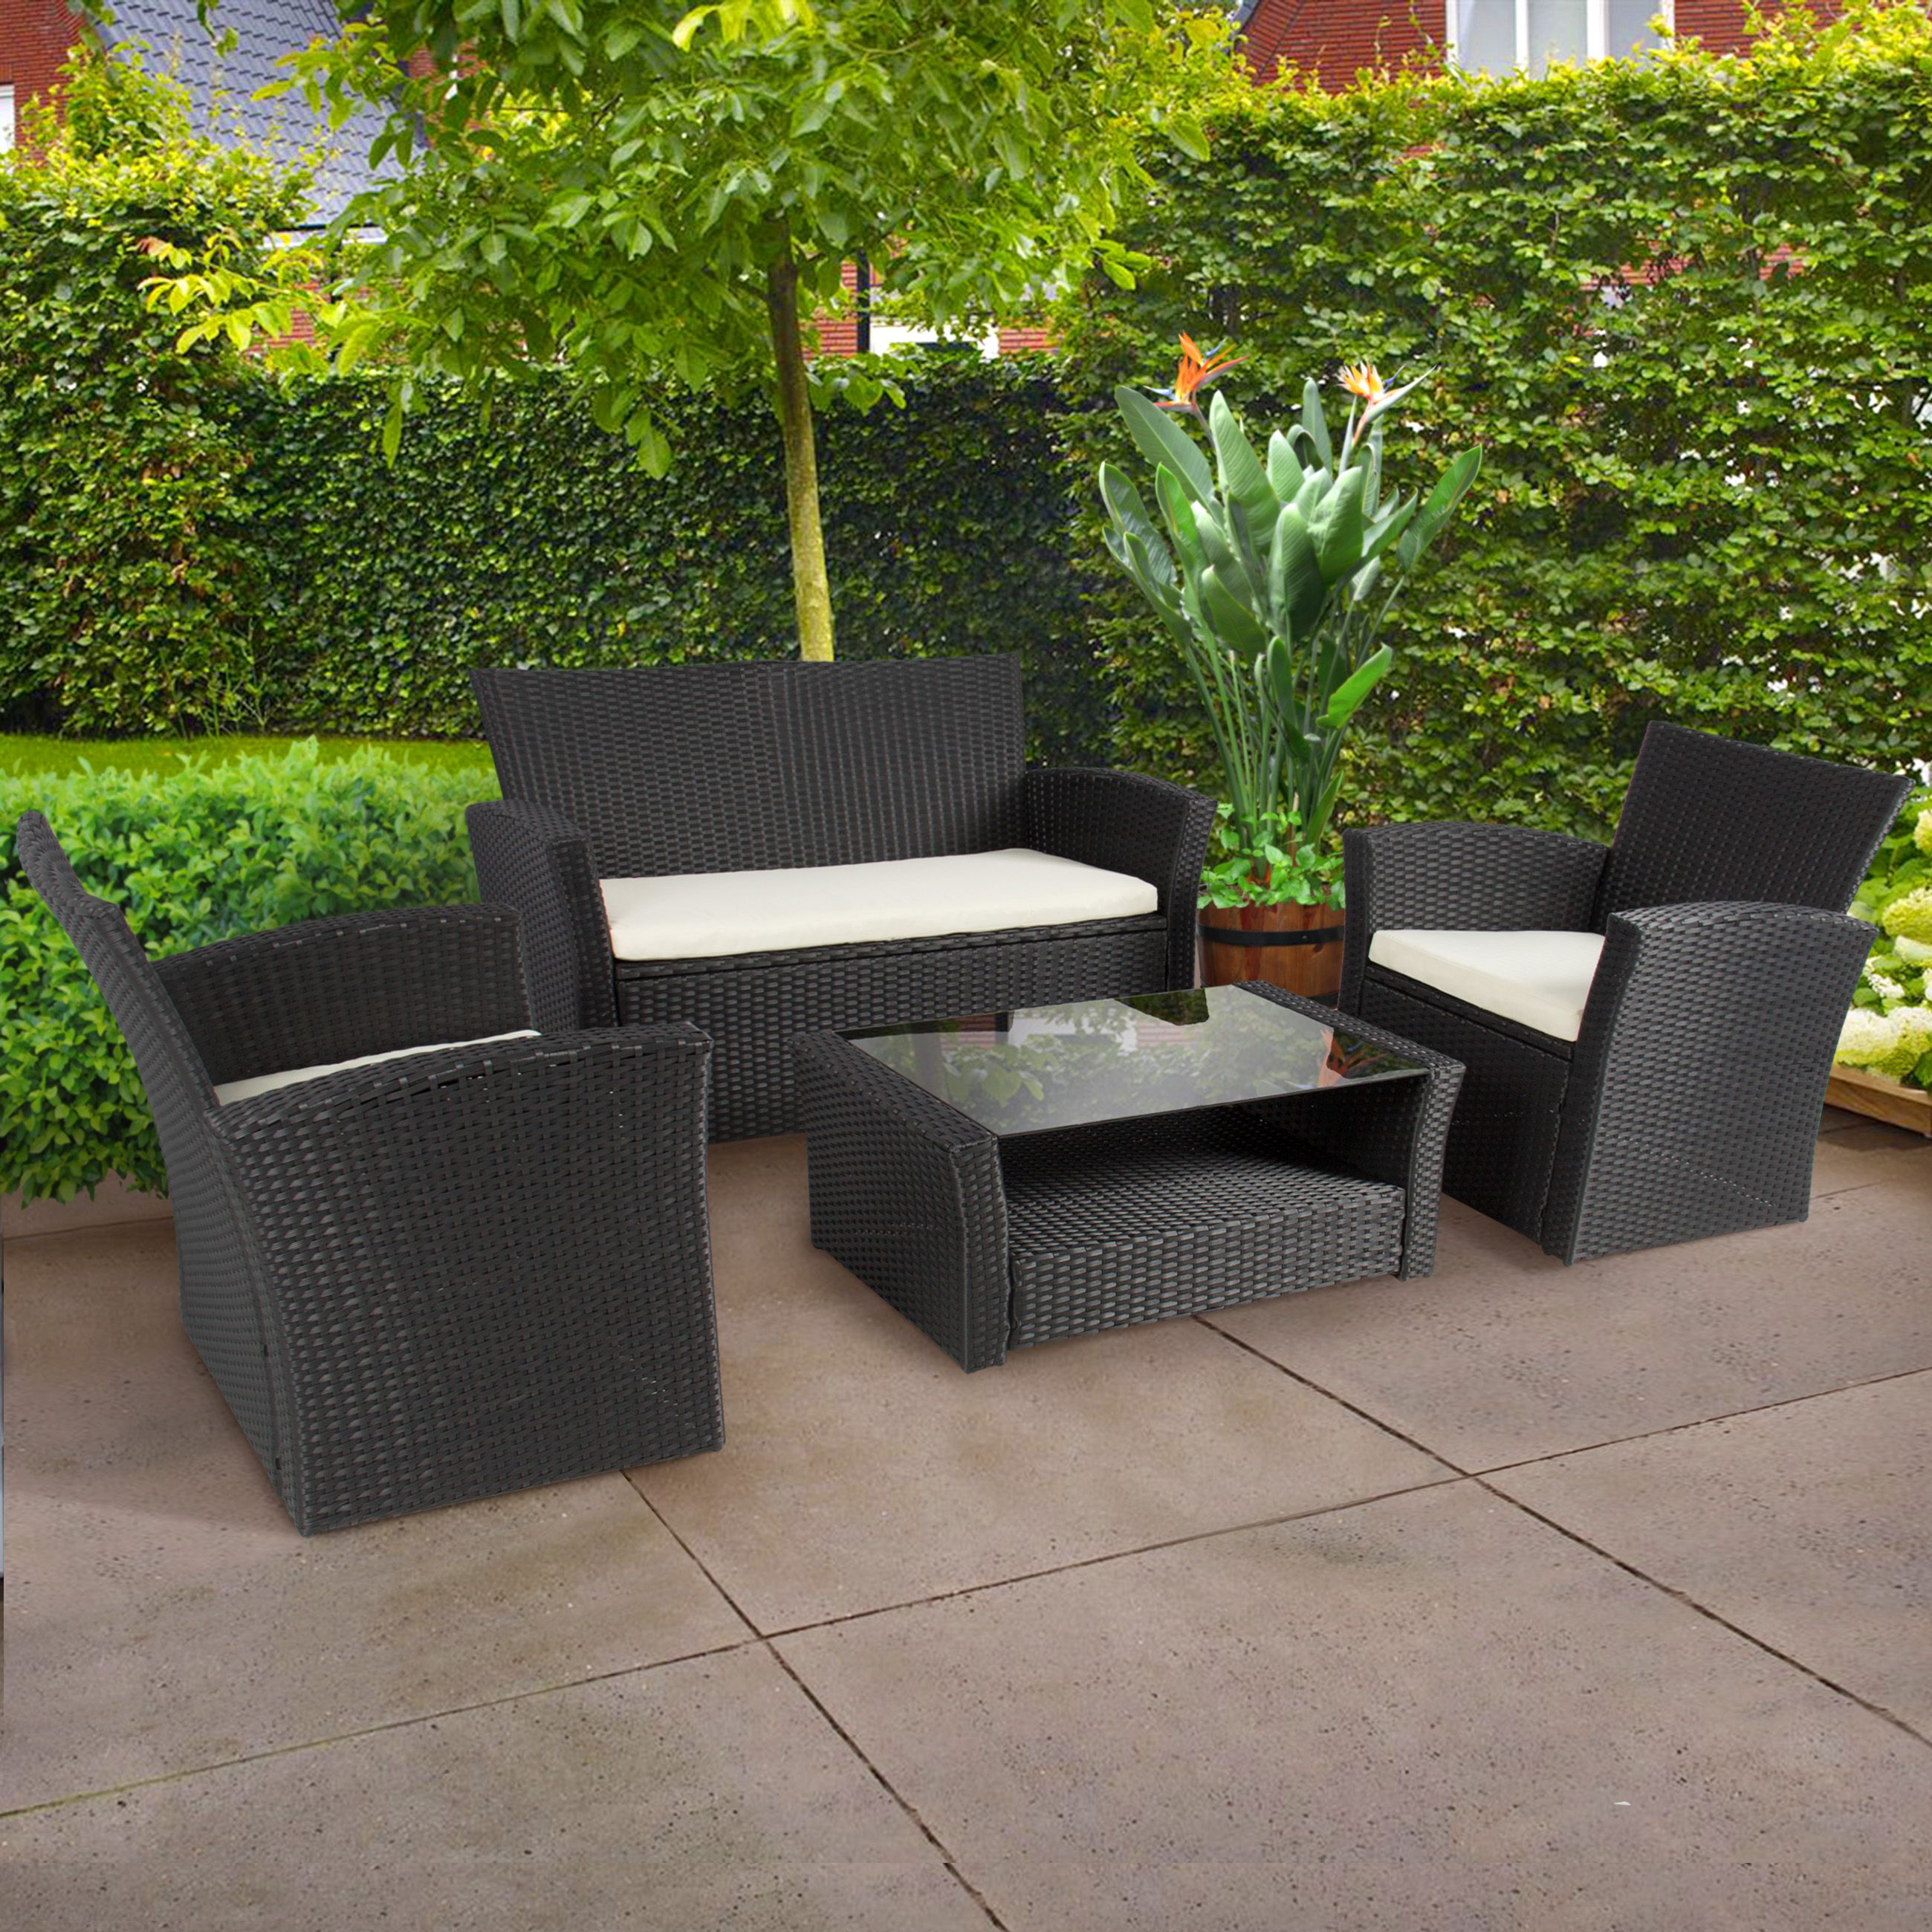 Rattan Outdoor Chairs 4pc Outdoor Patio Garden Furniture Wicker Rattan Sofa Set